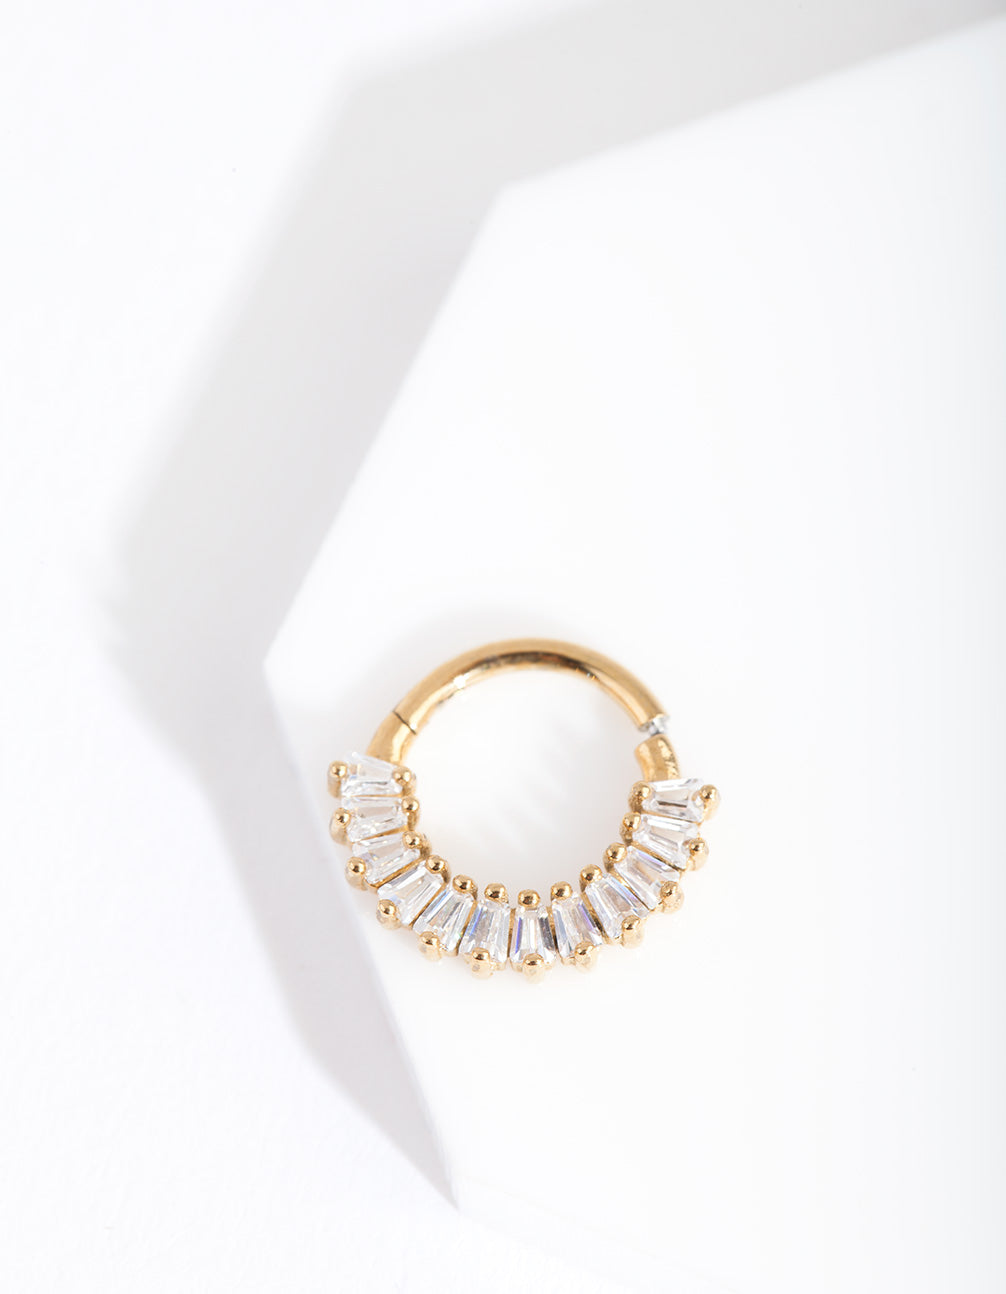 Gold Baguette Clicker Earring